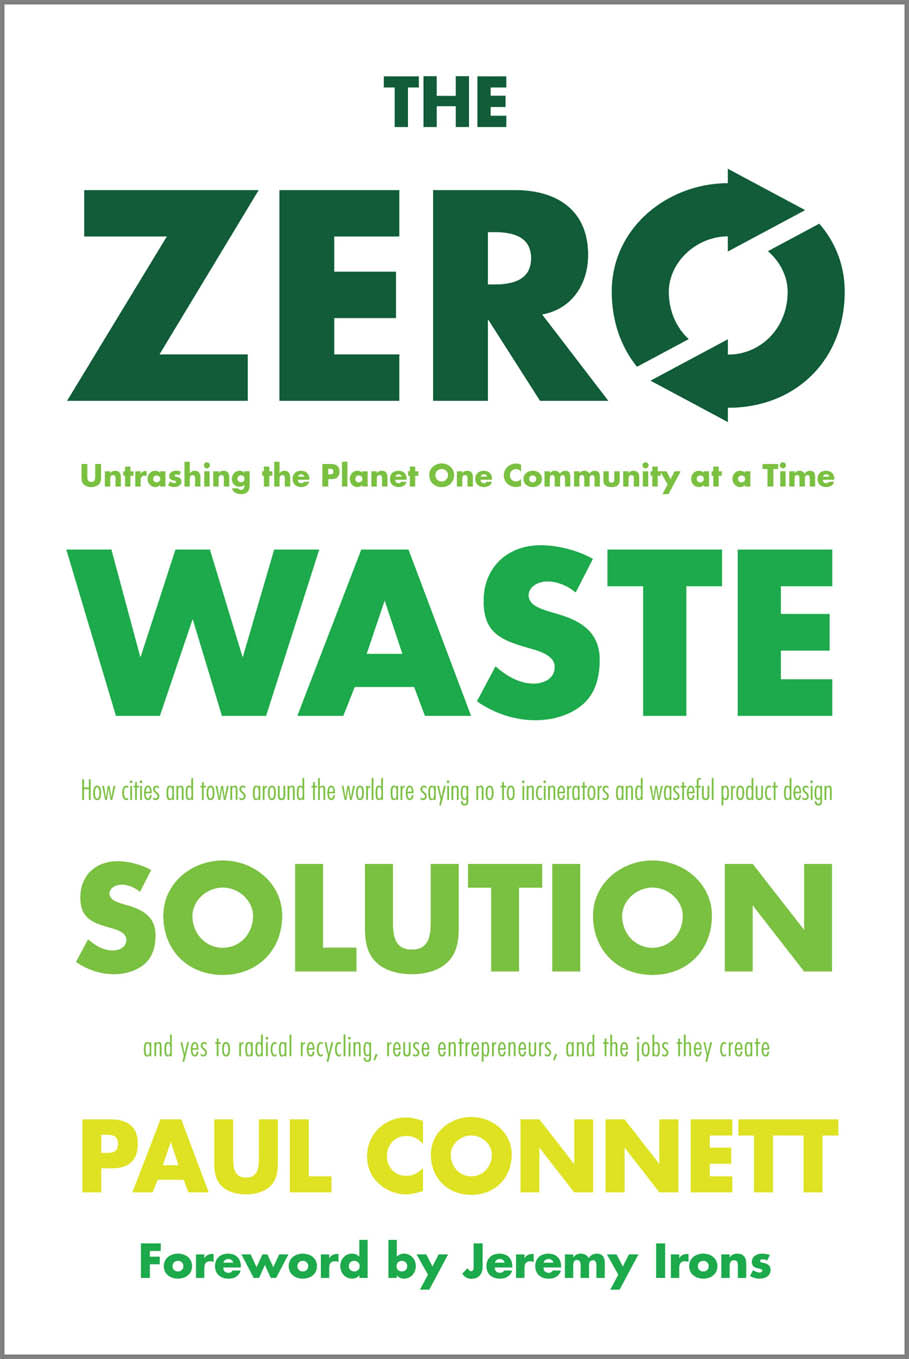 Zero Waste: A concrete step towards sustainability